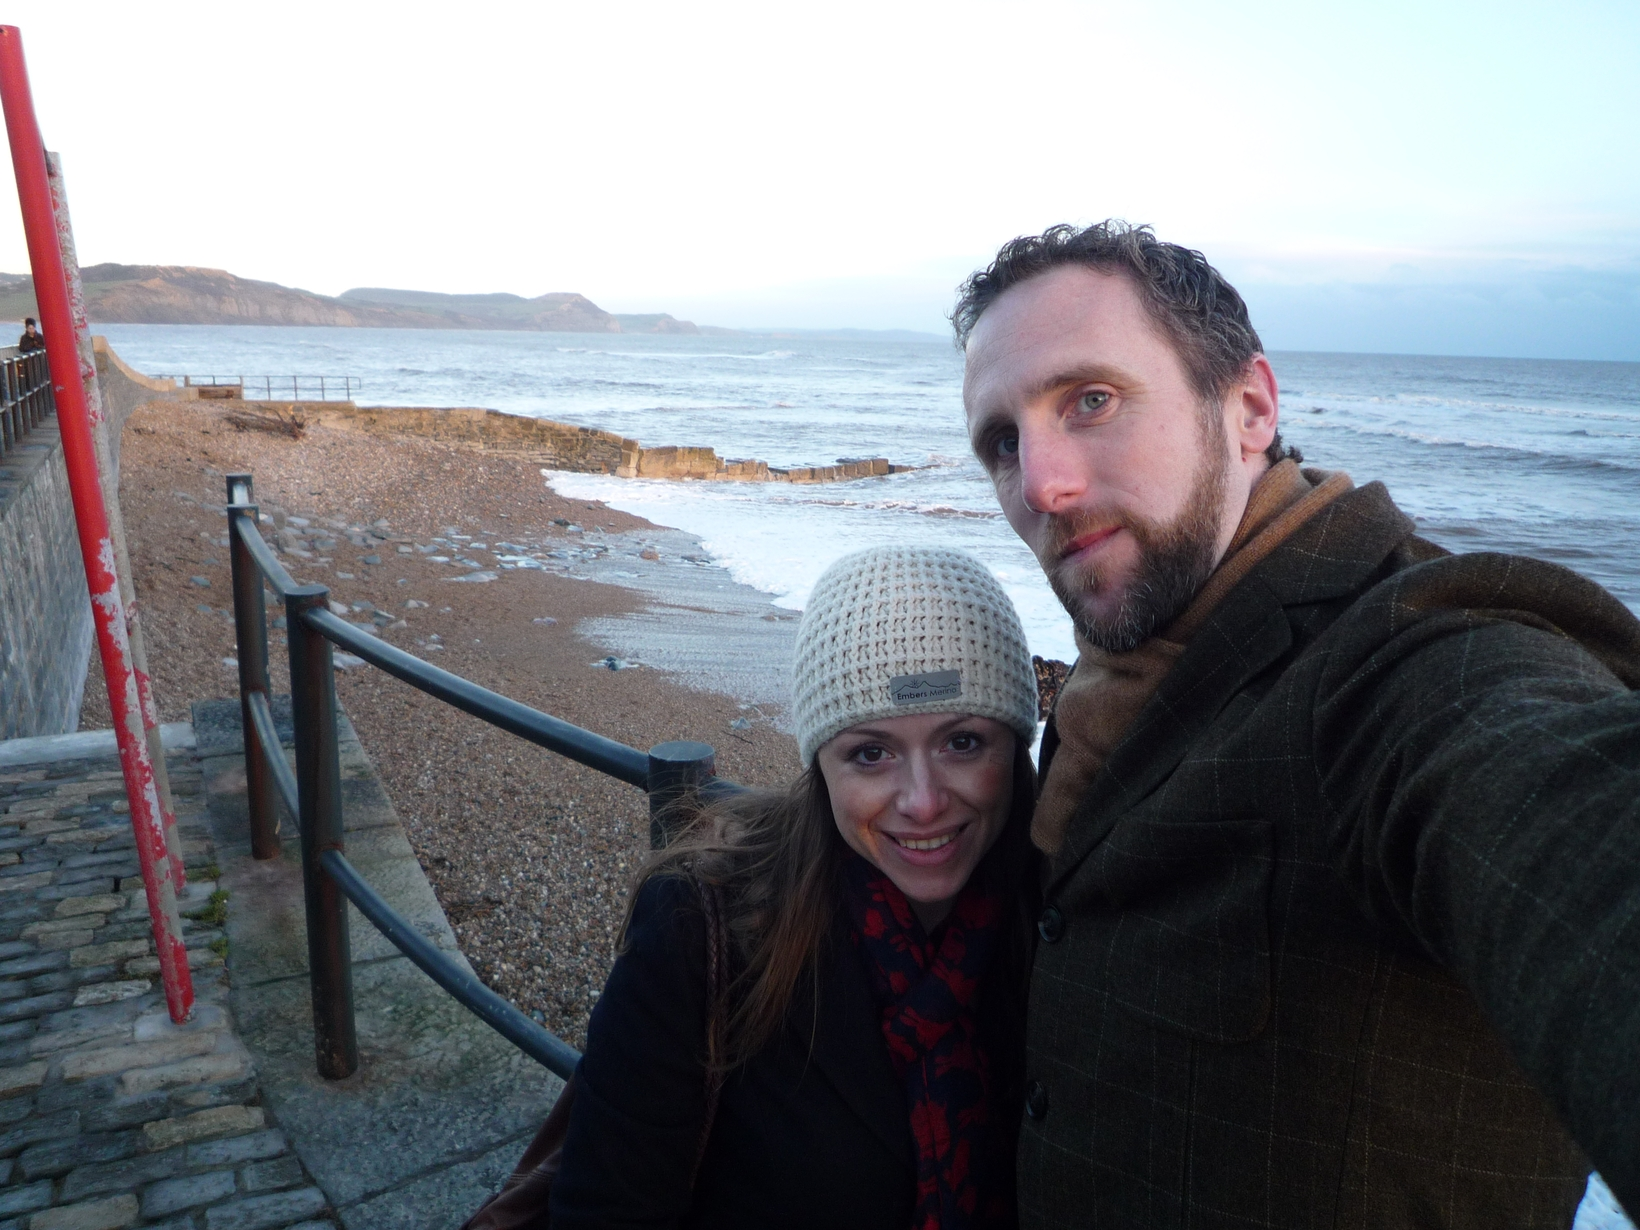 Lesley & Michael from Lyme Regis, United Kingdom